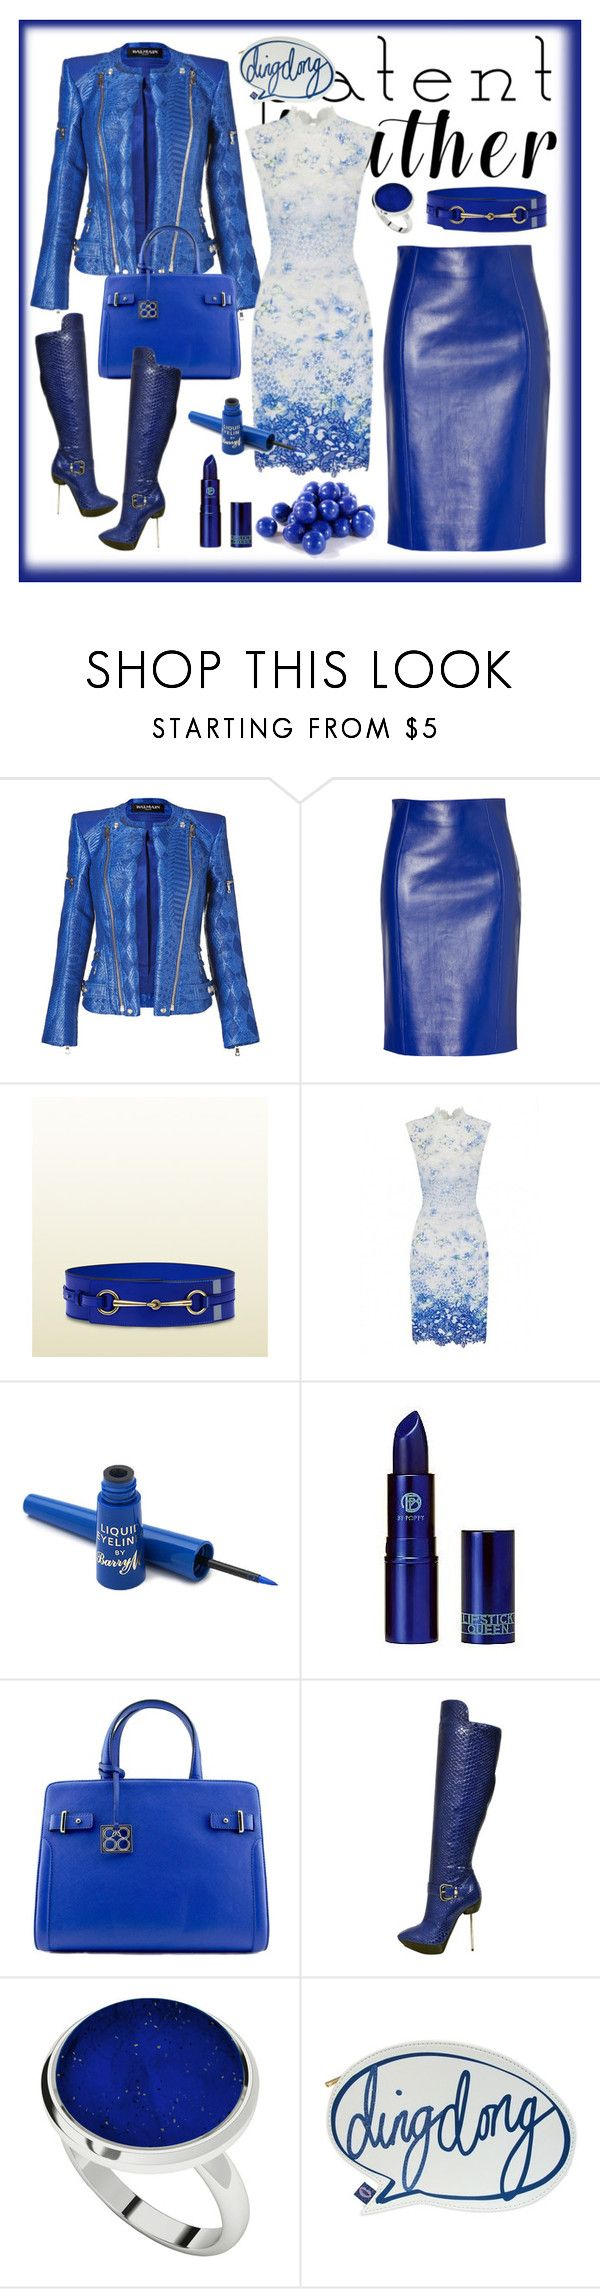 """""""City Slickers: Blue Patent Leather"""" by farrahdyna ❤ liked on Polyvore featuring Balmain, Versace, Gucci, Barry M, Lipstick Queen, StyleRocks, Disaster Designs, Blue, patentleather and bluetiful"""